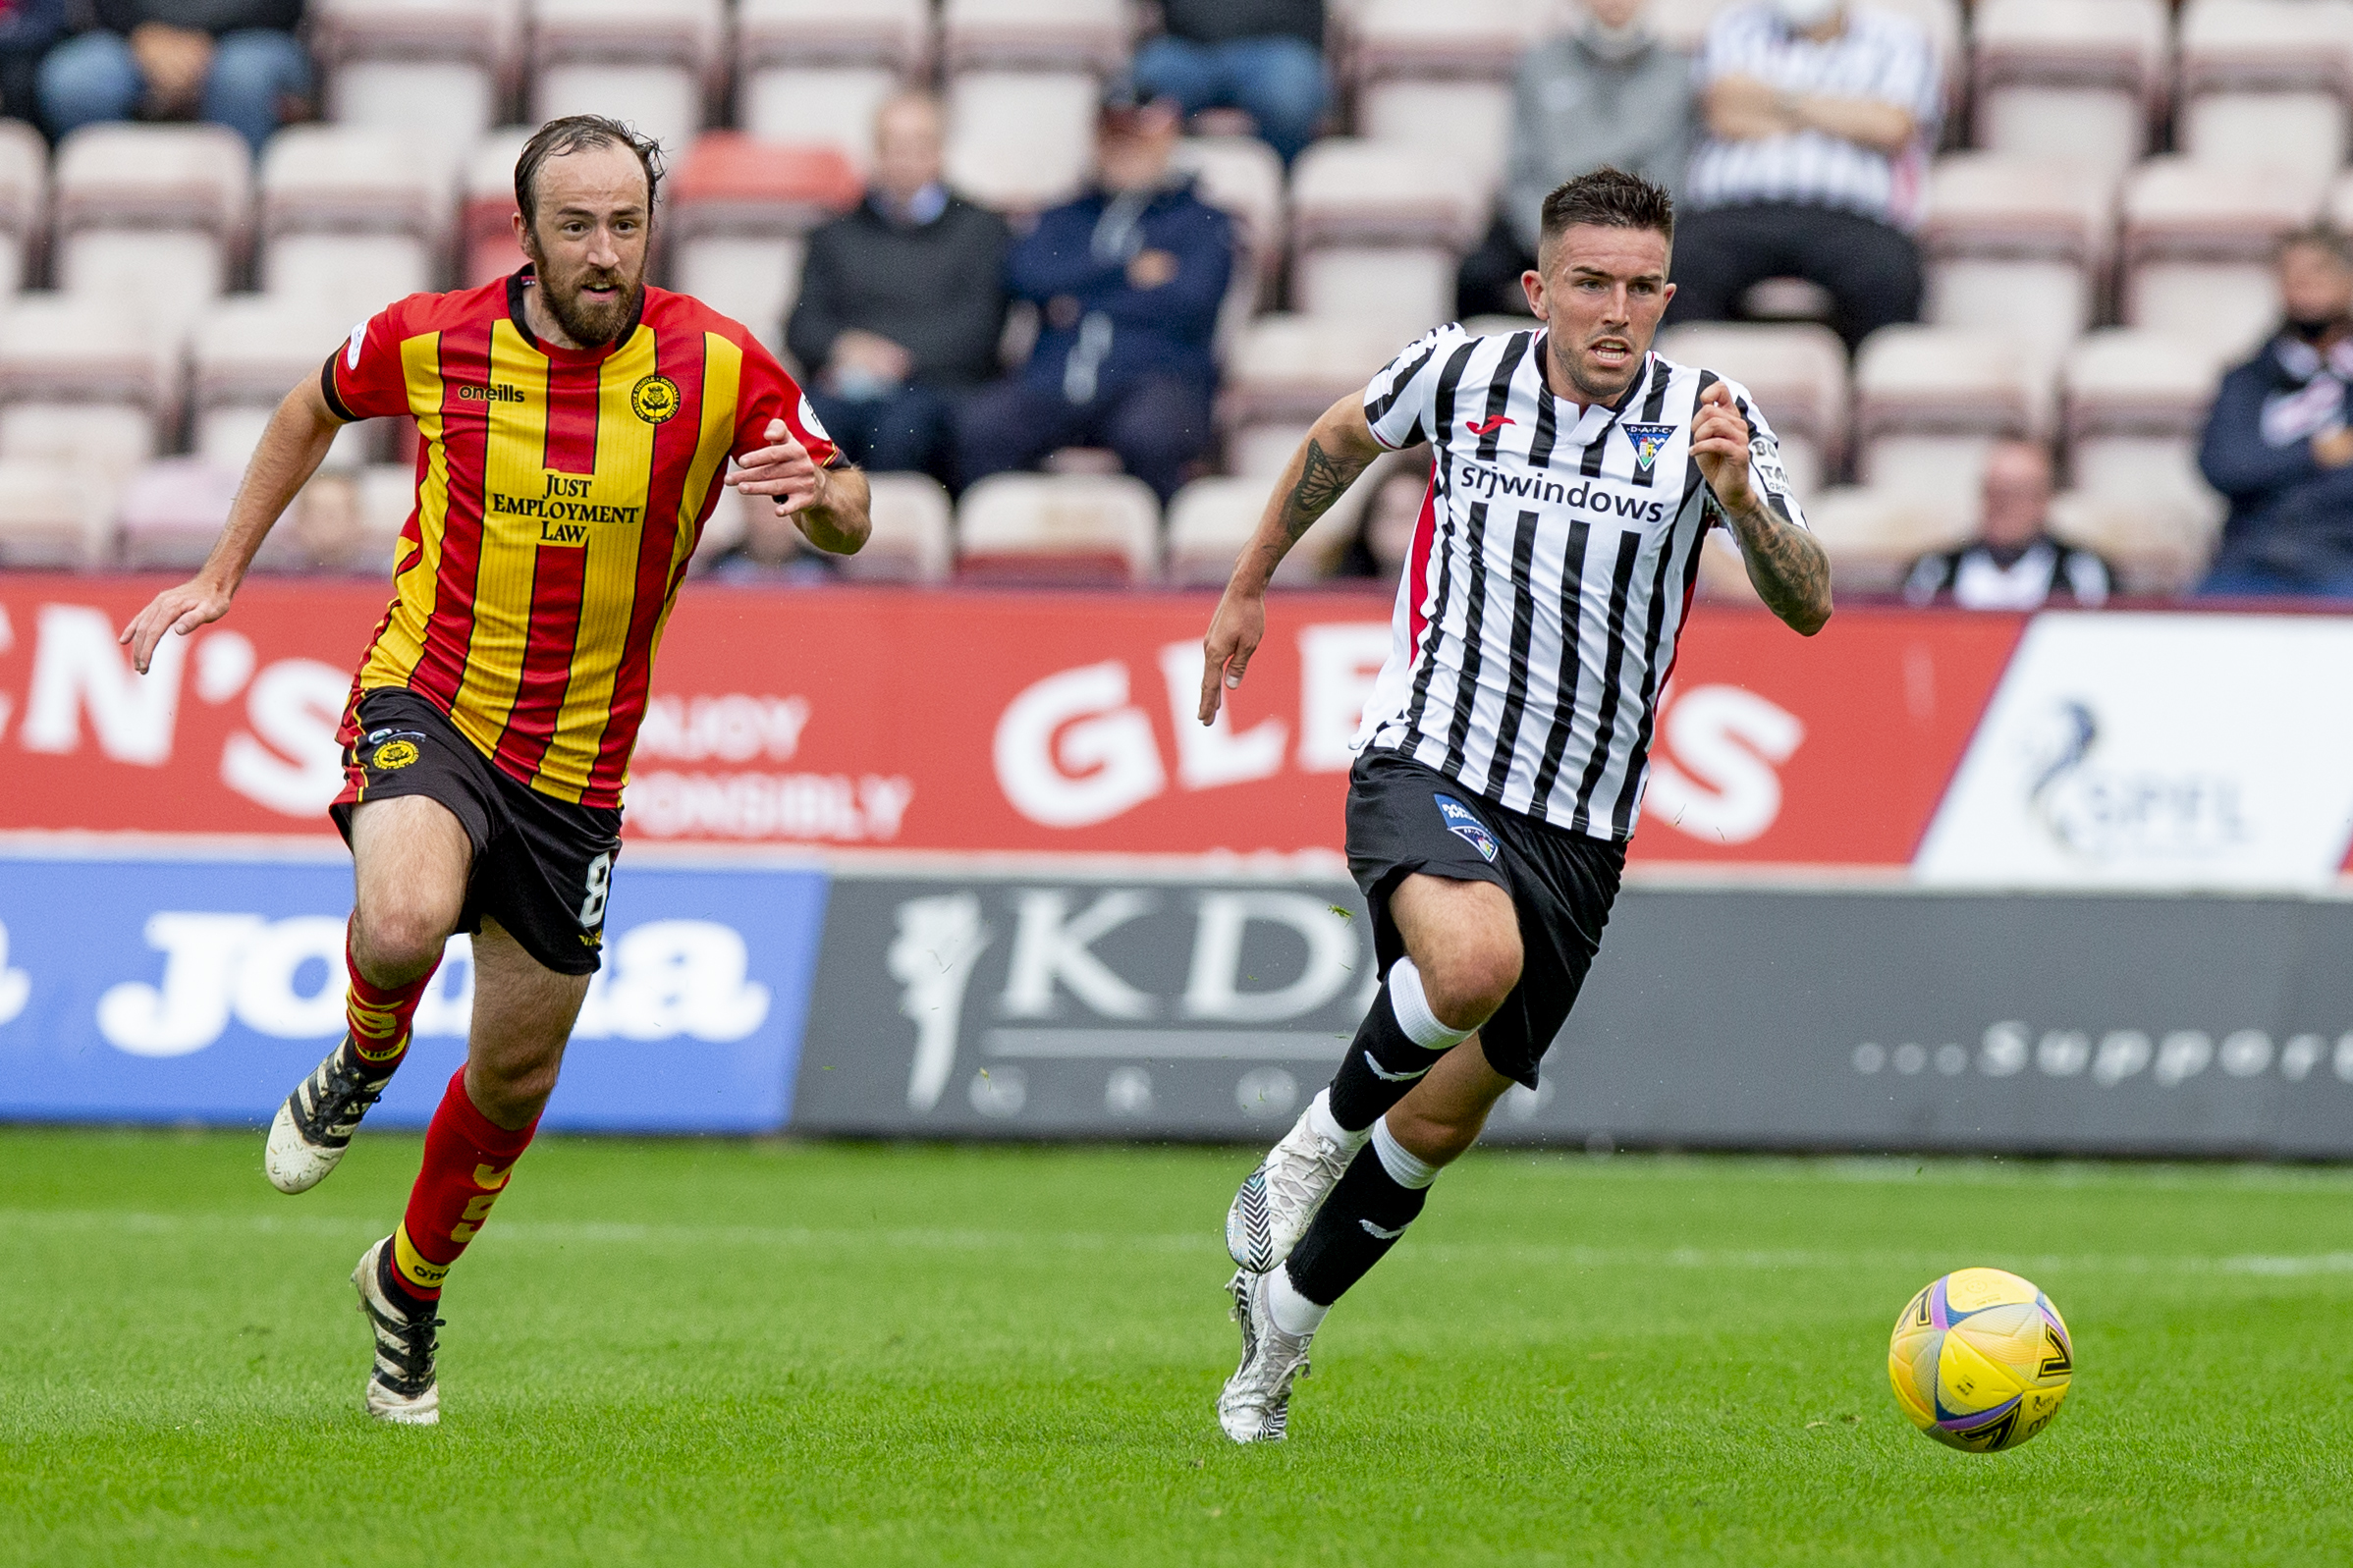 Dunfermline: Kevin O'Hara calls for Rangers bravery and trust